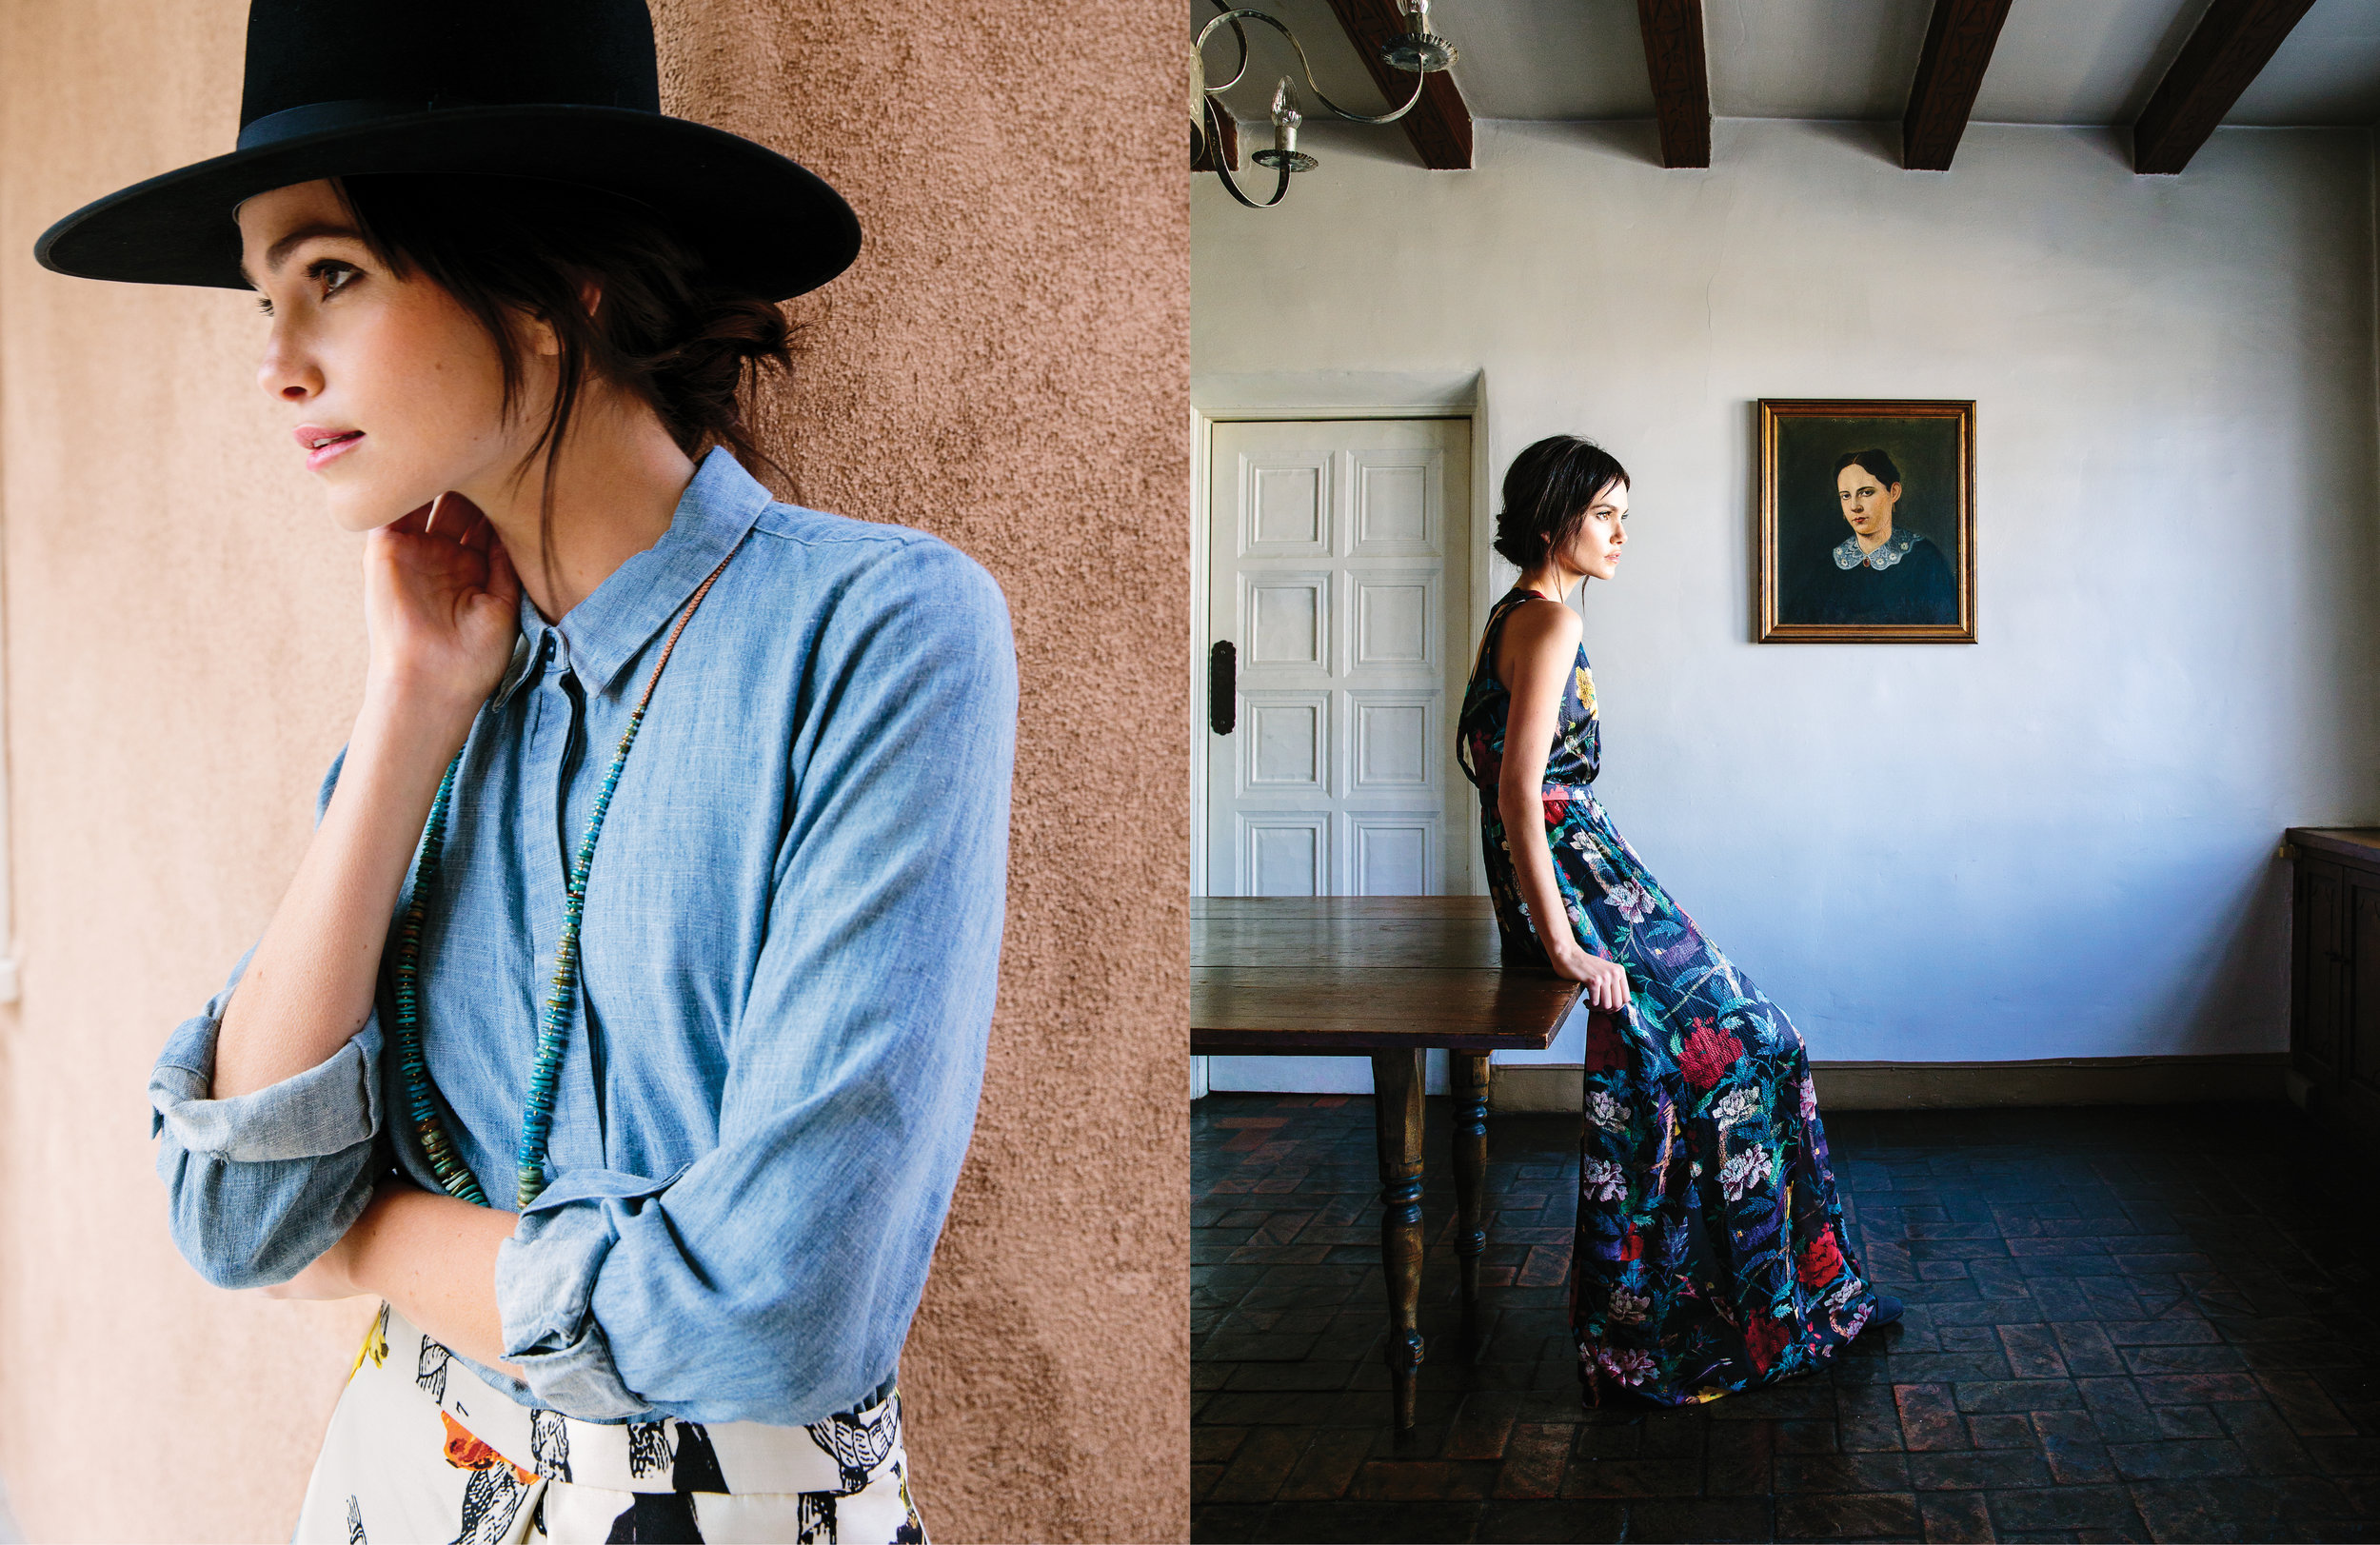 Photo: Wynn Myers; Wardrobe Stylist: Sara Oswalt; Hair/MUA: Kata Baron; Shot on location at Los Poblanos, Albuquerque, NM